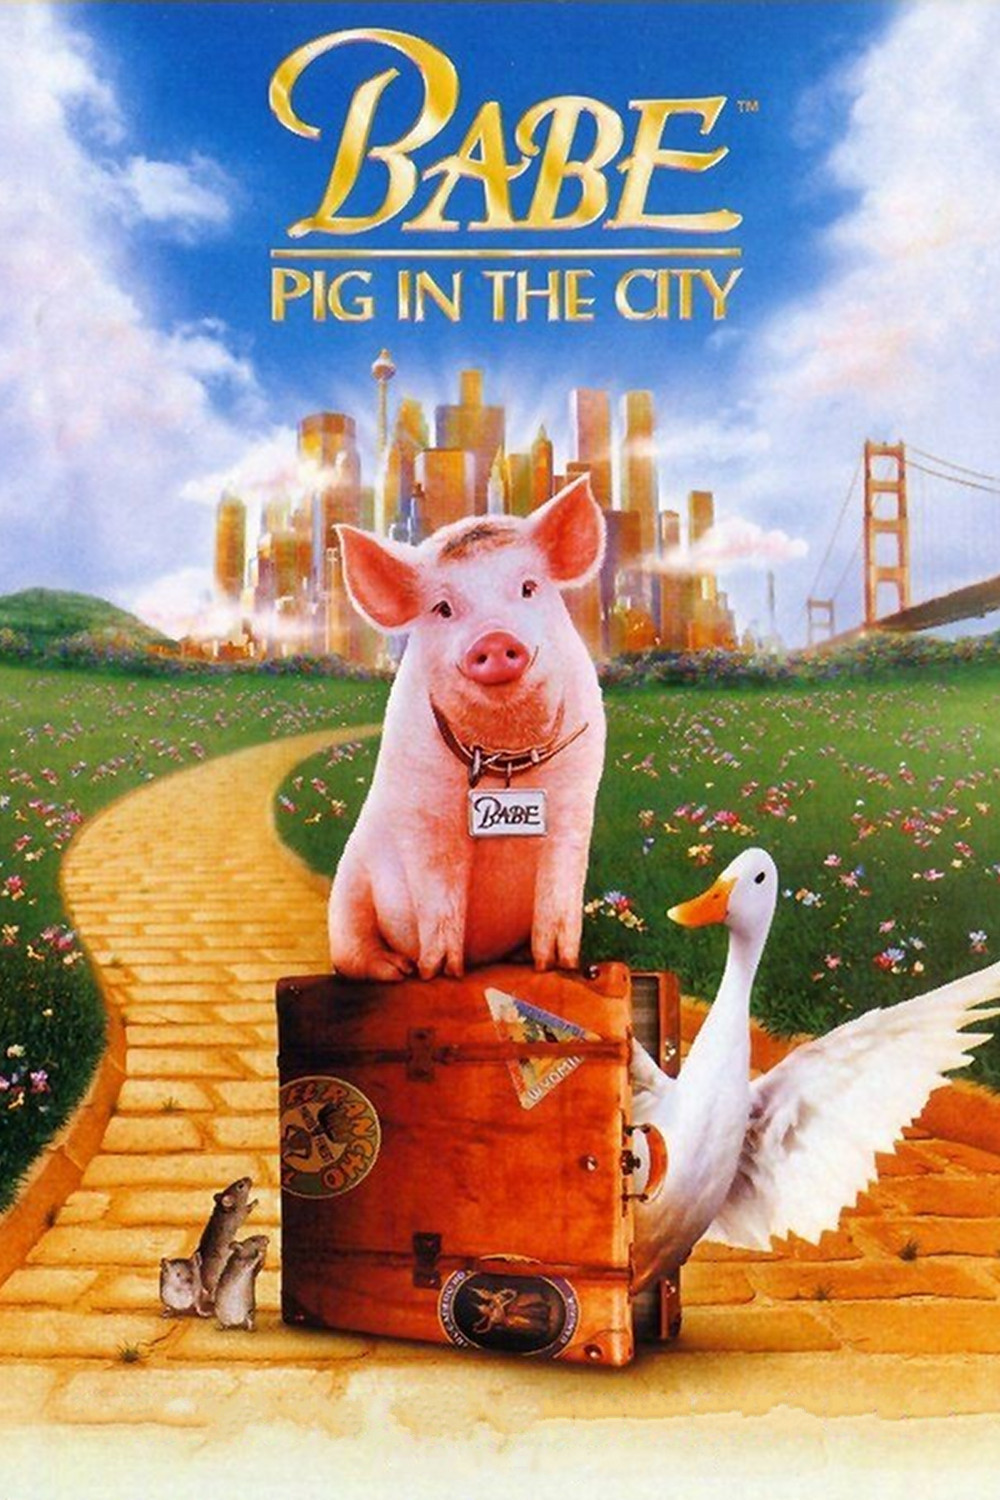 Babe_Pig_in_the_City_Poster.jpg